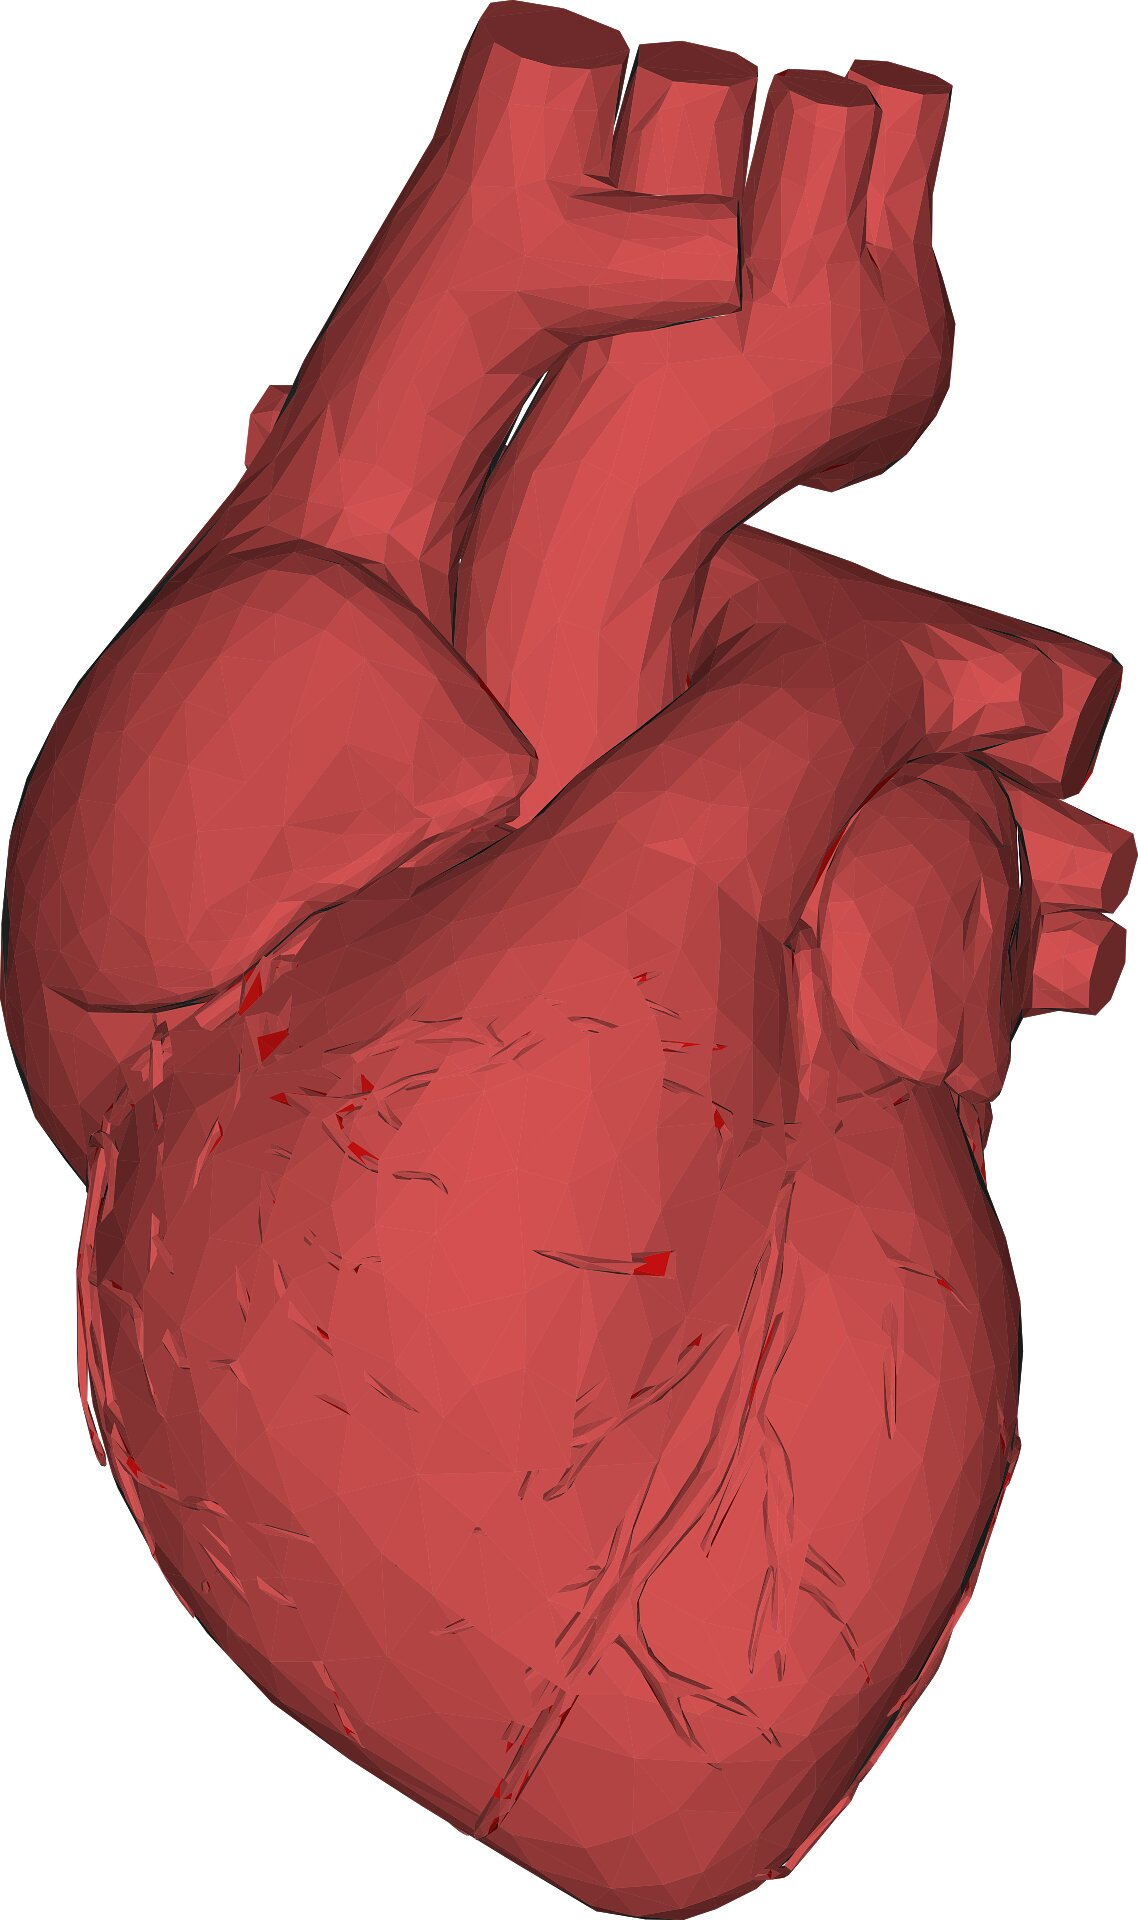 photo of Fast heart, slow heart: Changes in the molecular motor myosin explain the difference image